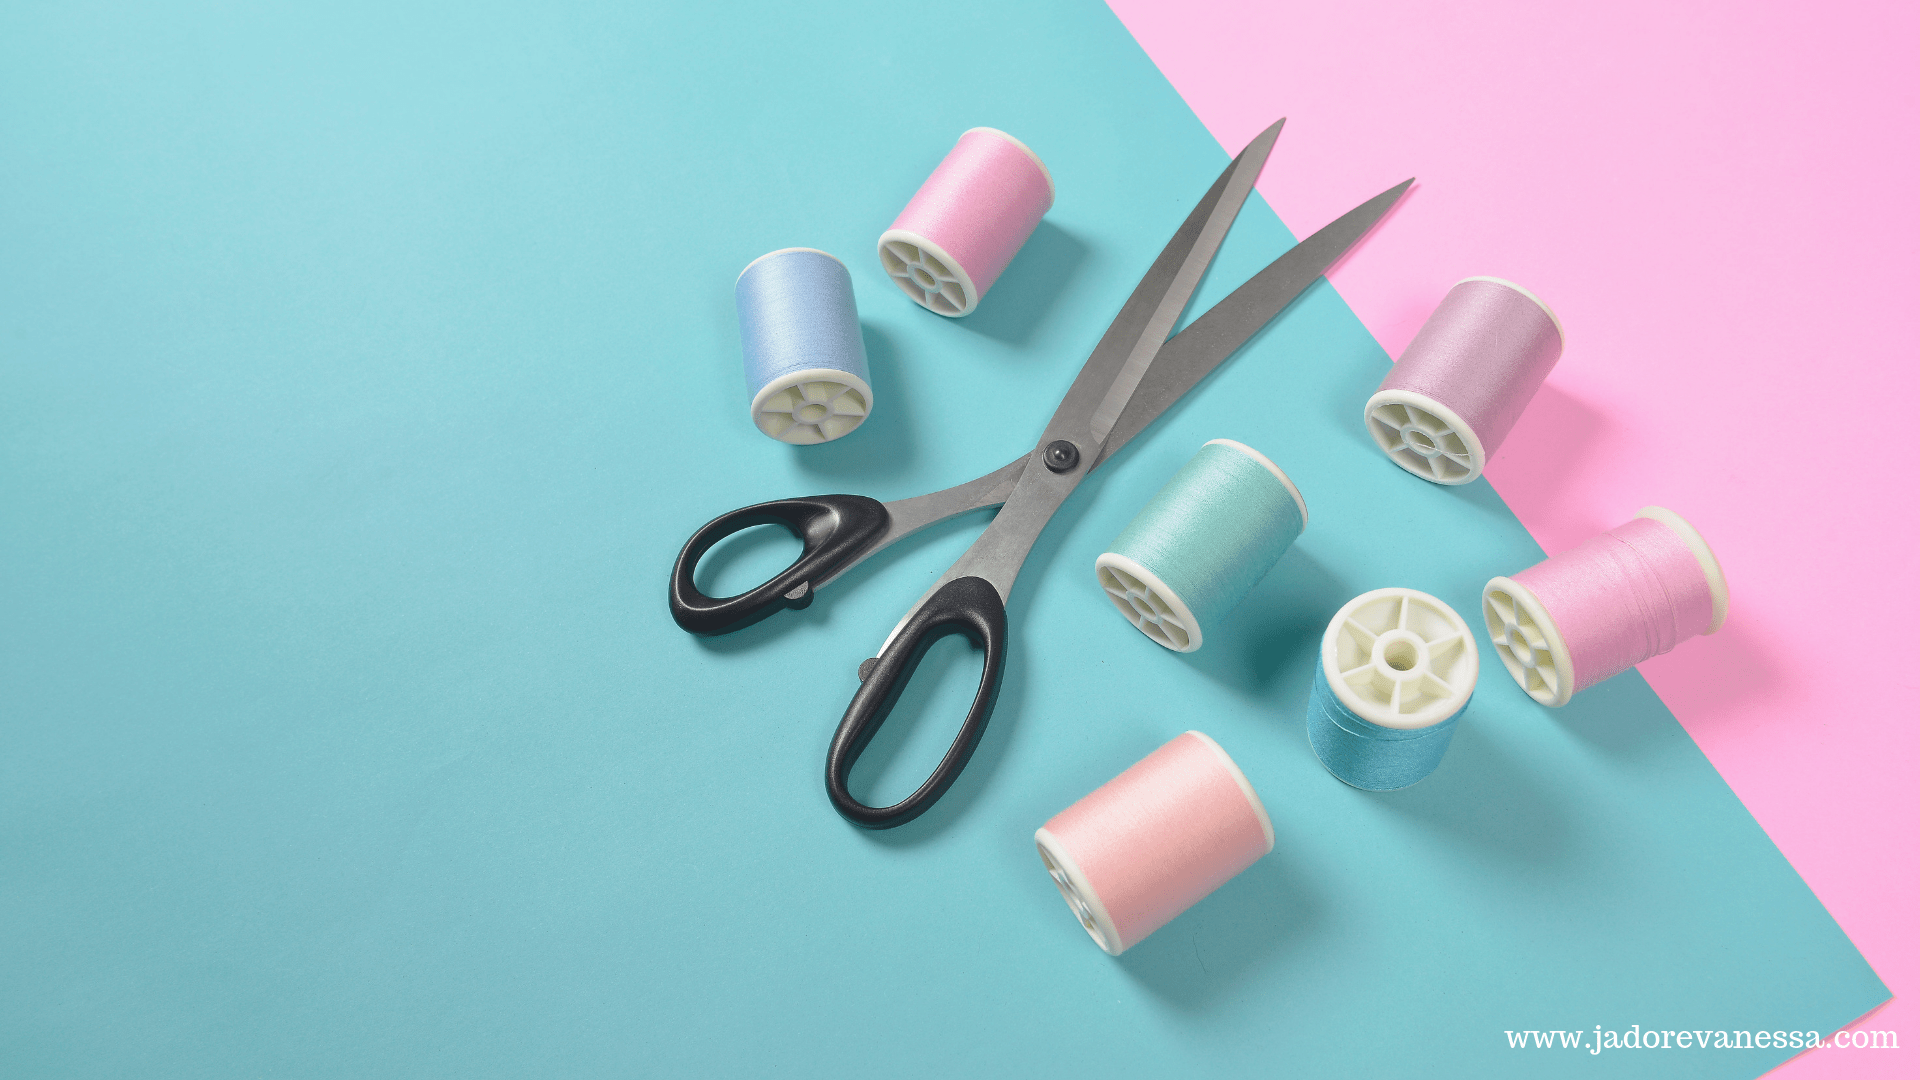 5 Refashion Projects To Try!